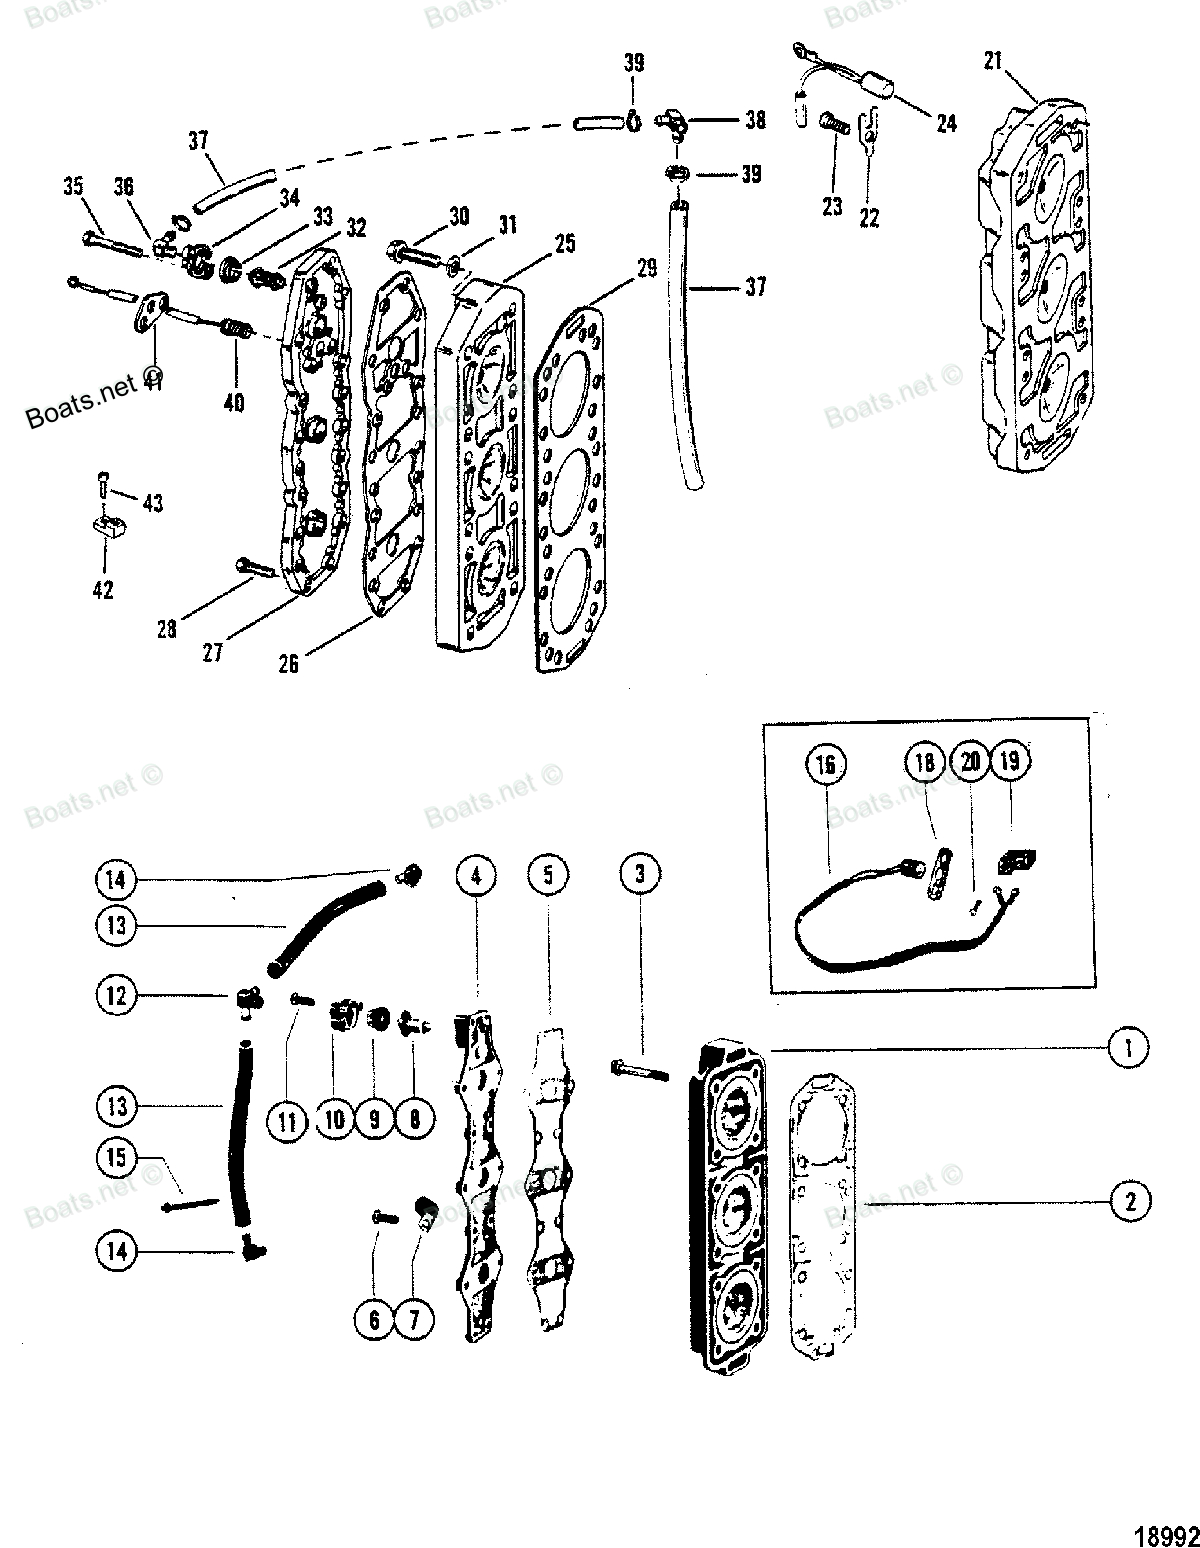 Boat Fuse Panel Wiring Diagram